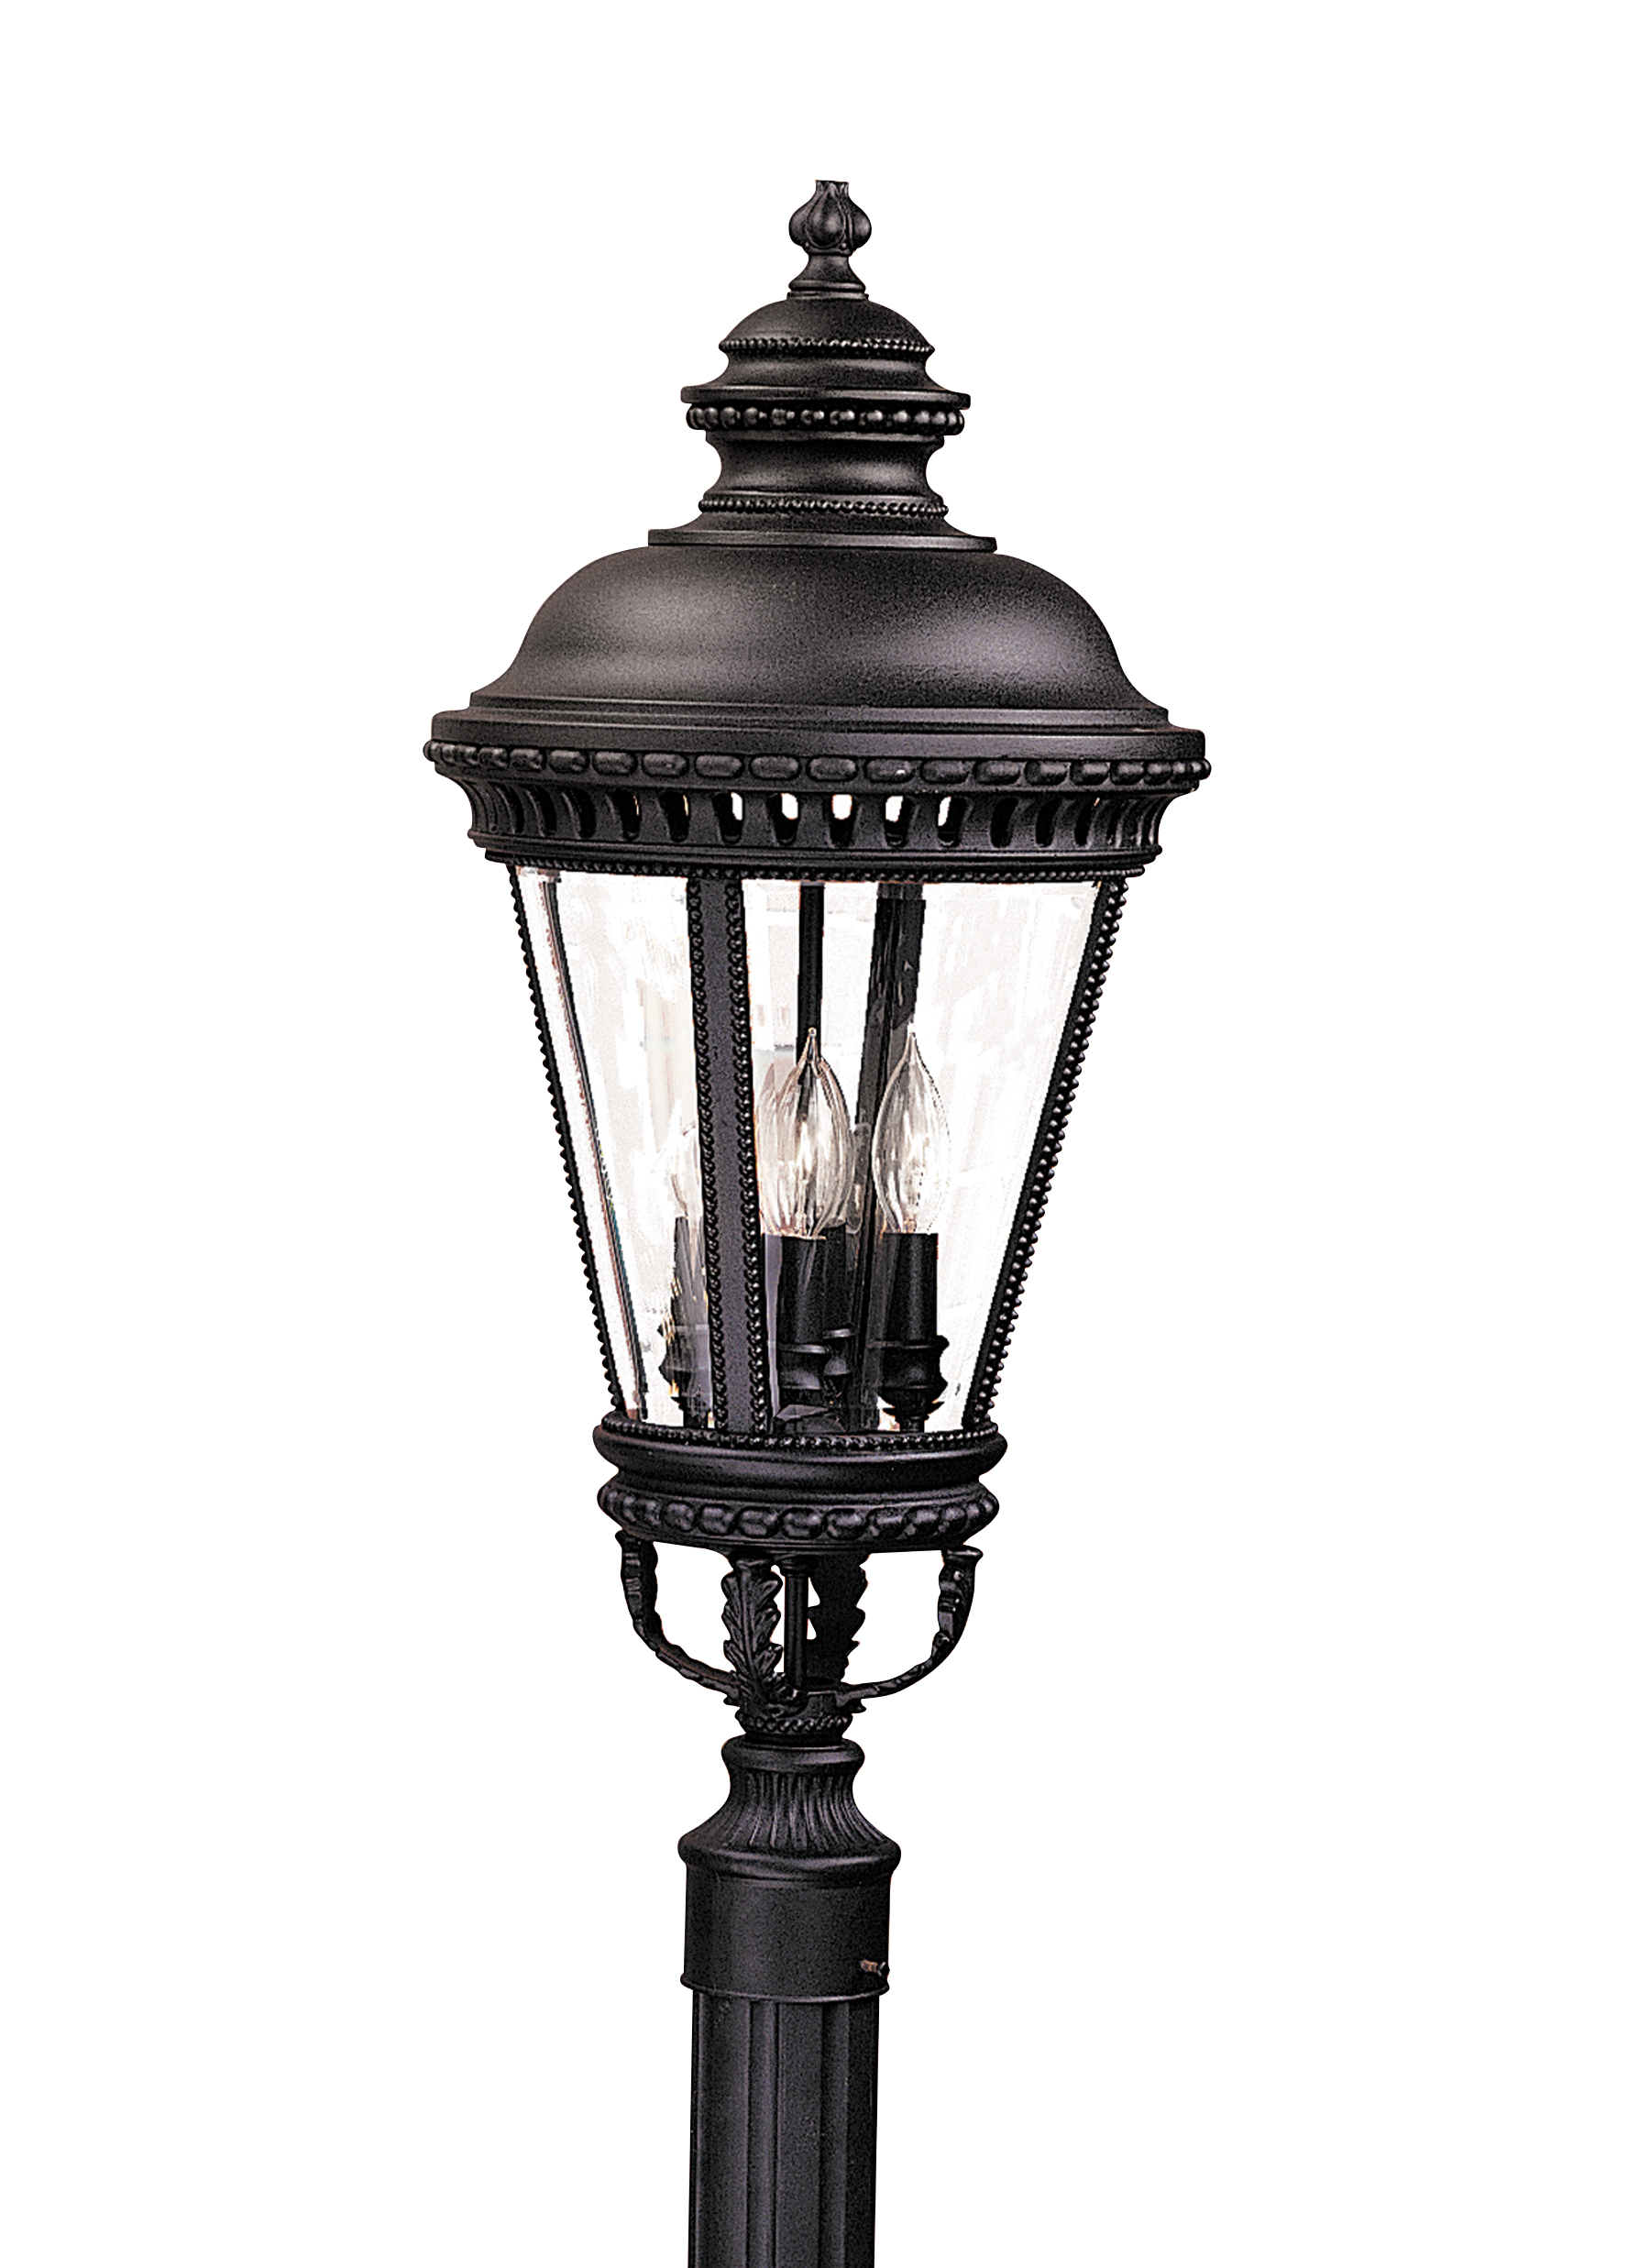 lighting lamps canada gama floor exterior lowes shop kit in base photogiraffe outdoor globe sonic led lamp photocell light pagoda solar christmas post h awesome at black lights